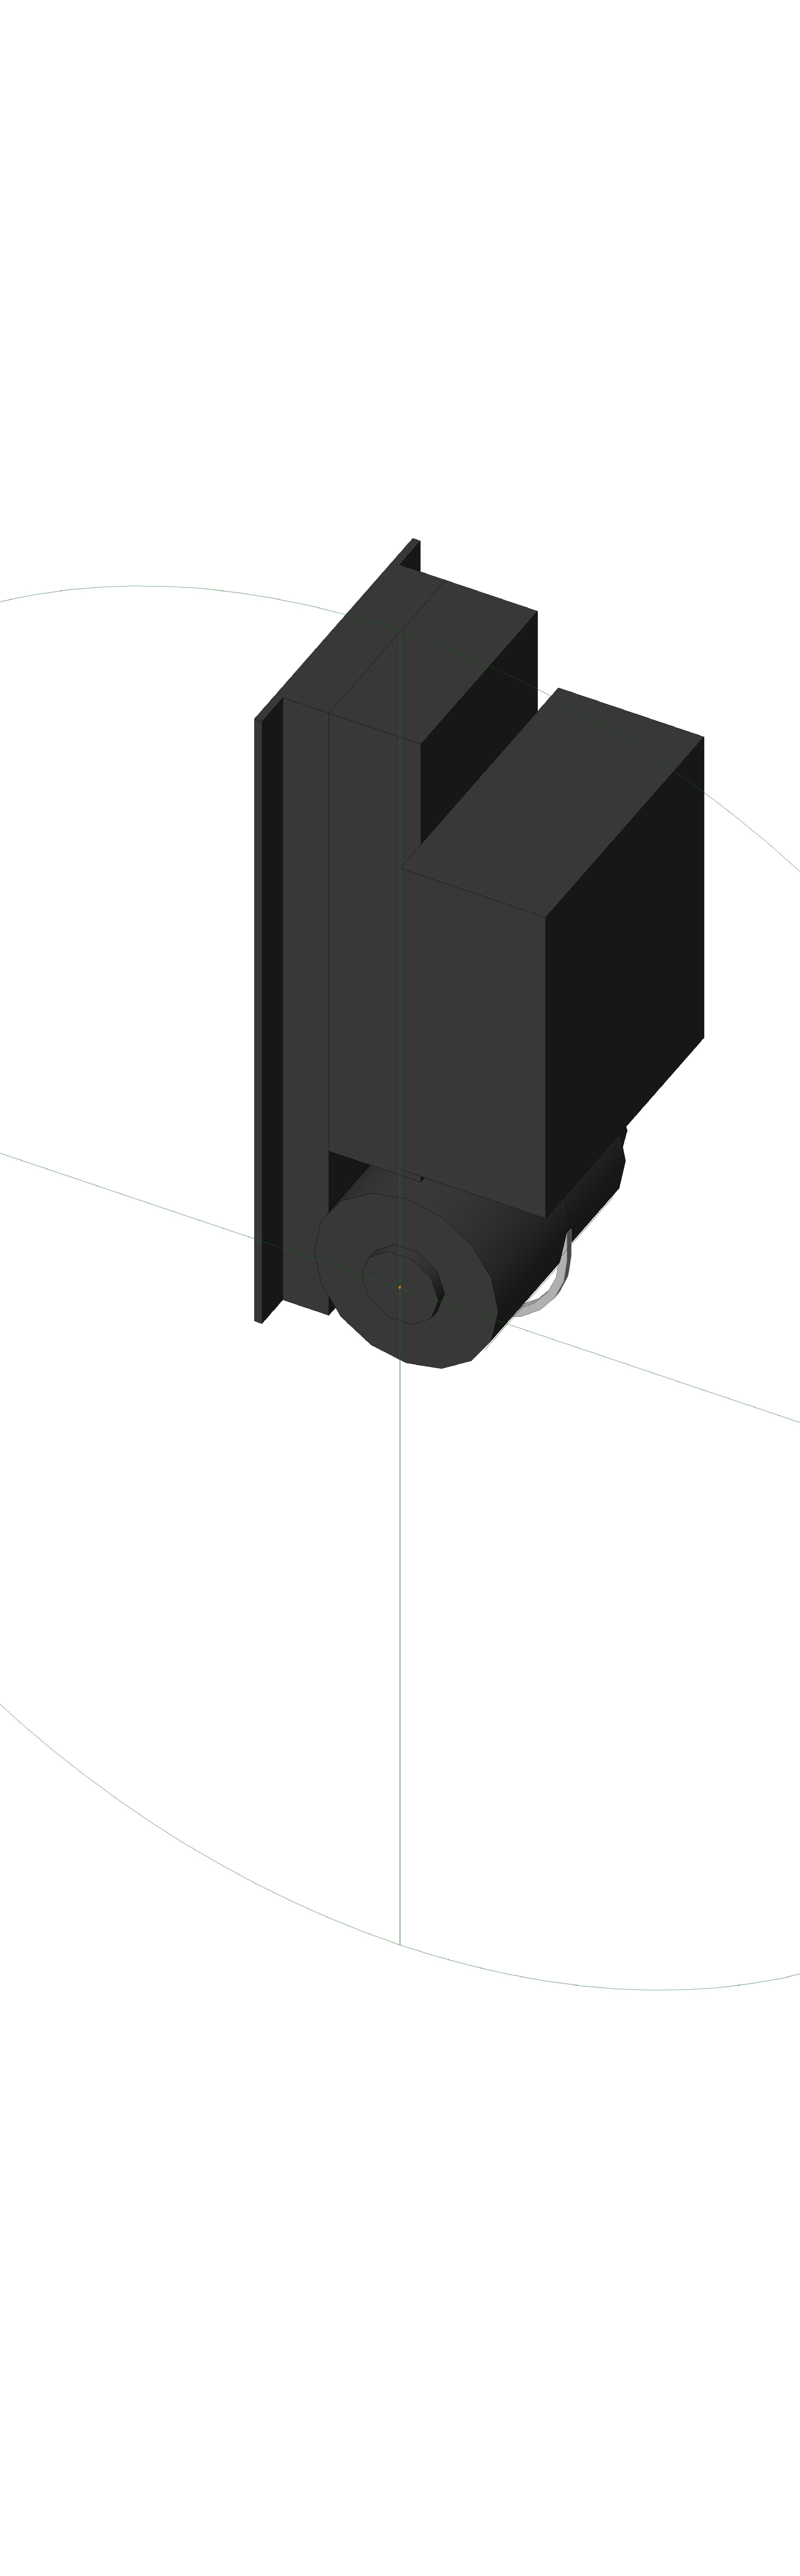 raynor-power-hoist-standard-wiring-diagram-6 Raynor Commercial Door Wiring Diagram on